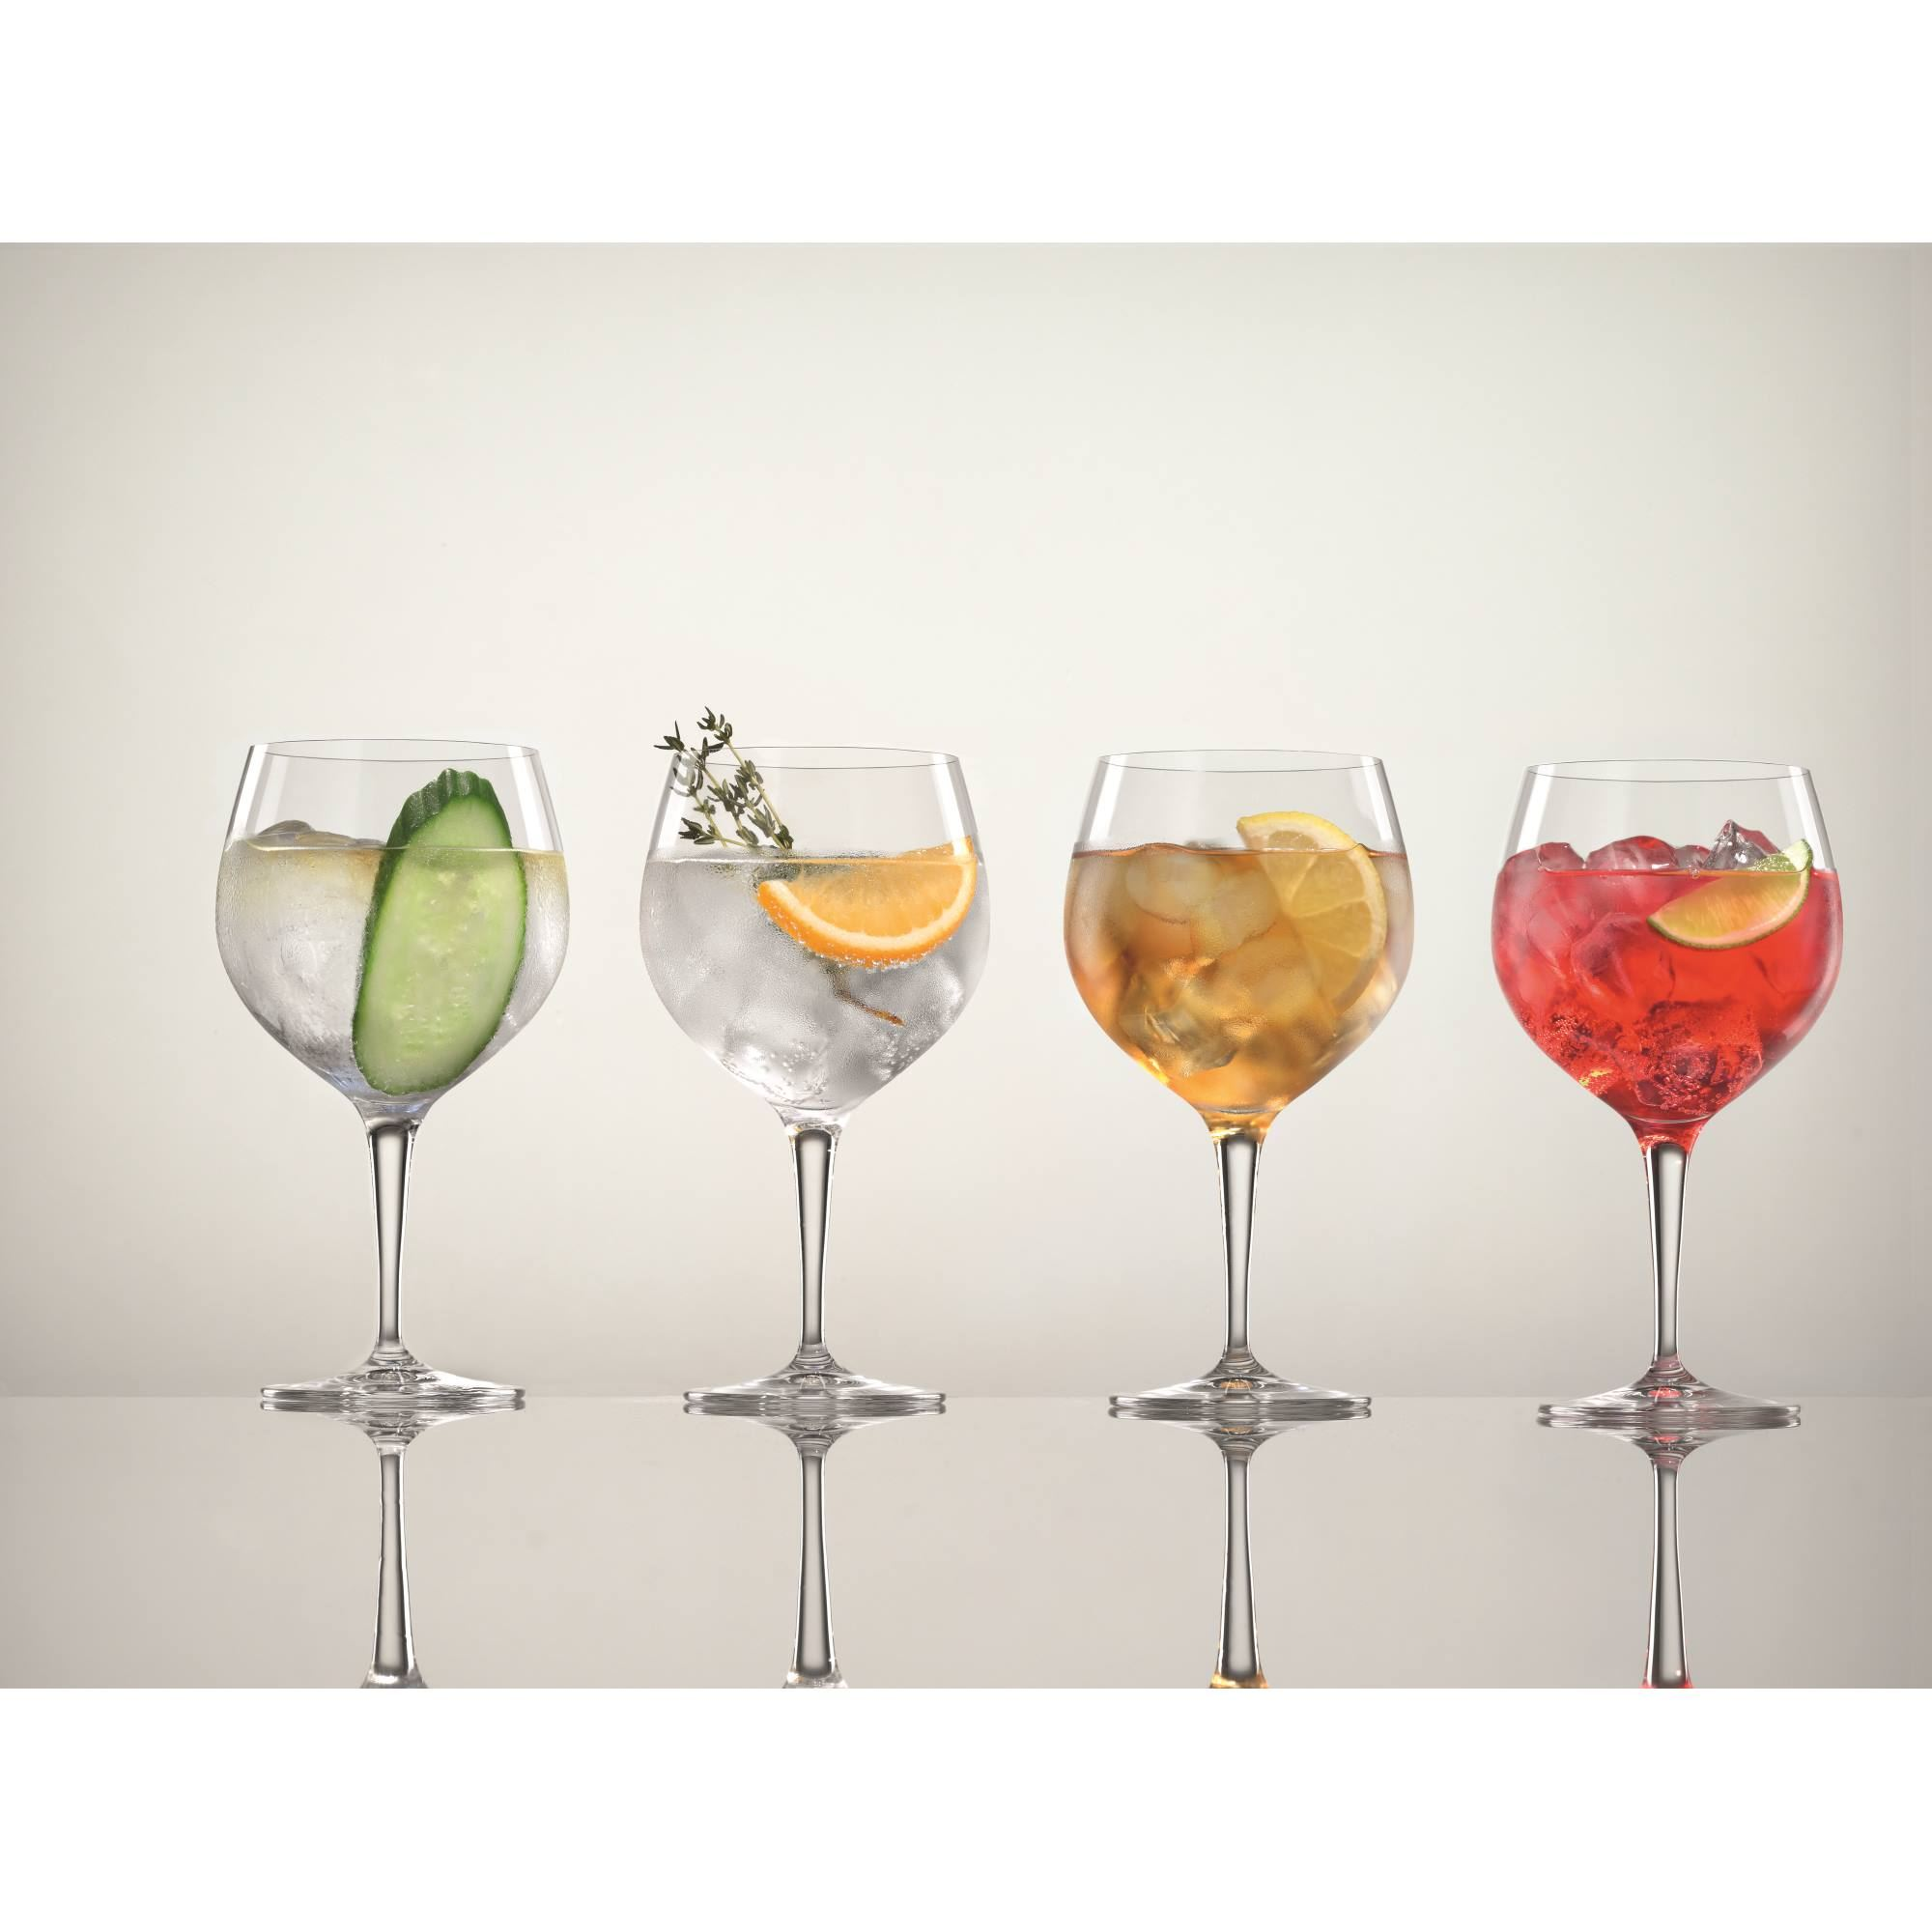 spiegelau gin tonic 4 verres dans le set contenu 630 ml. Black Bedroom Furniture Sets. Home Design Ideas